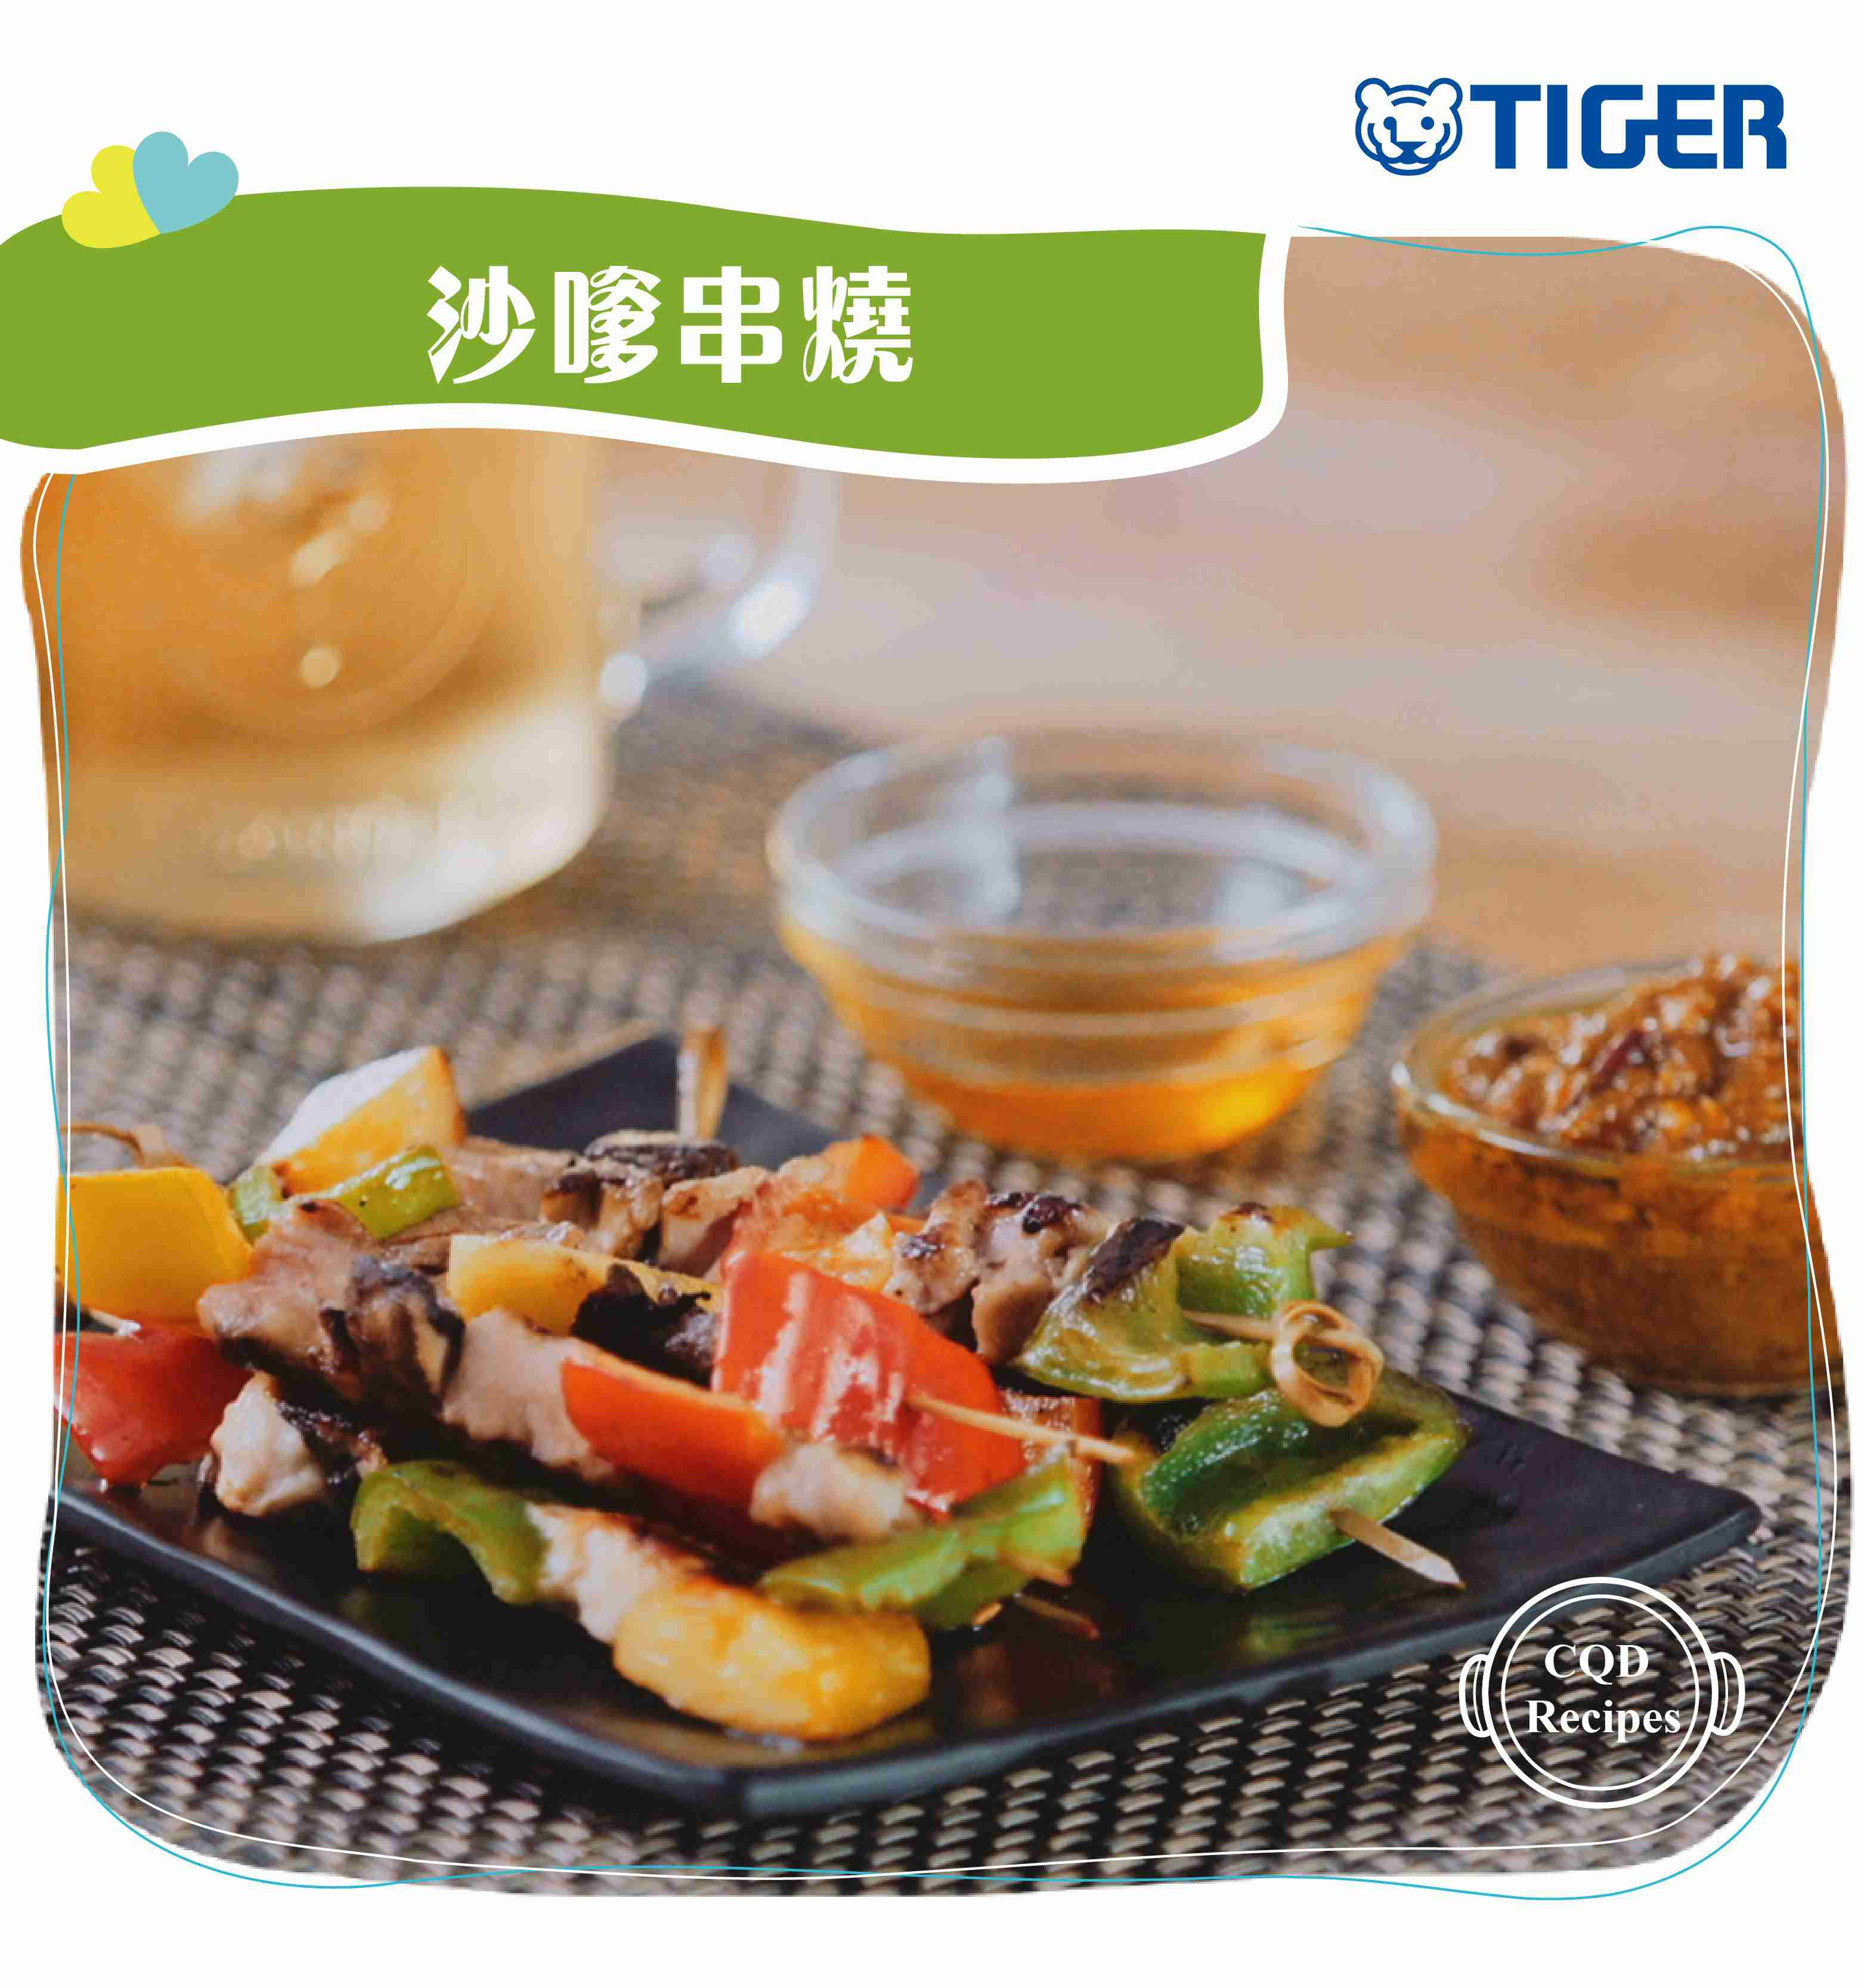 tiger-recipe-chicken-pork-beef-satay-1.jpg (307 KB)